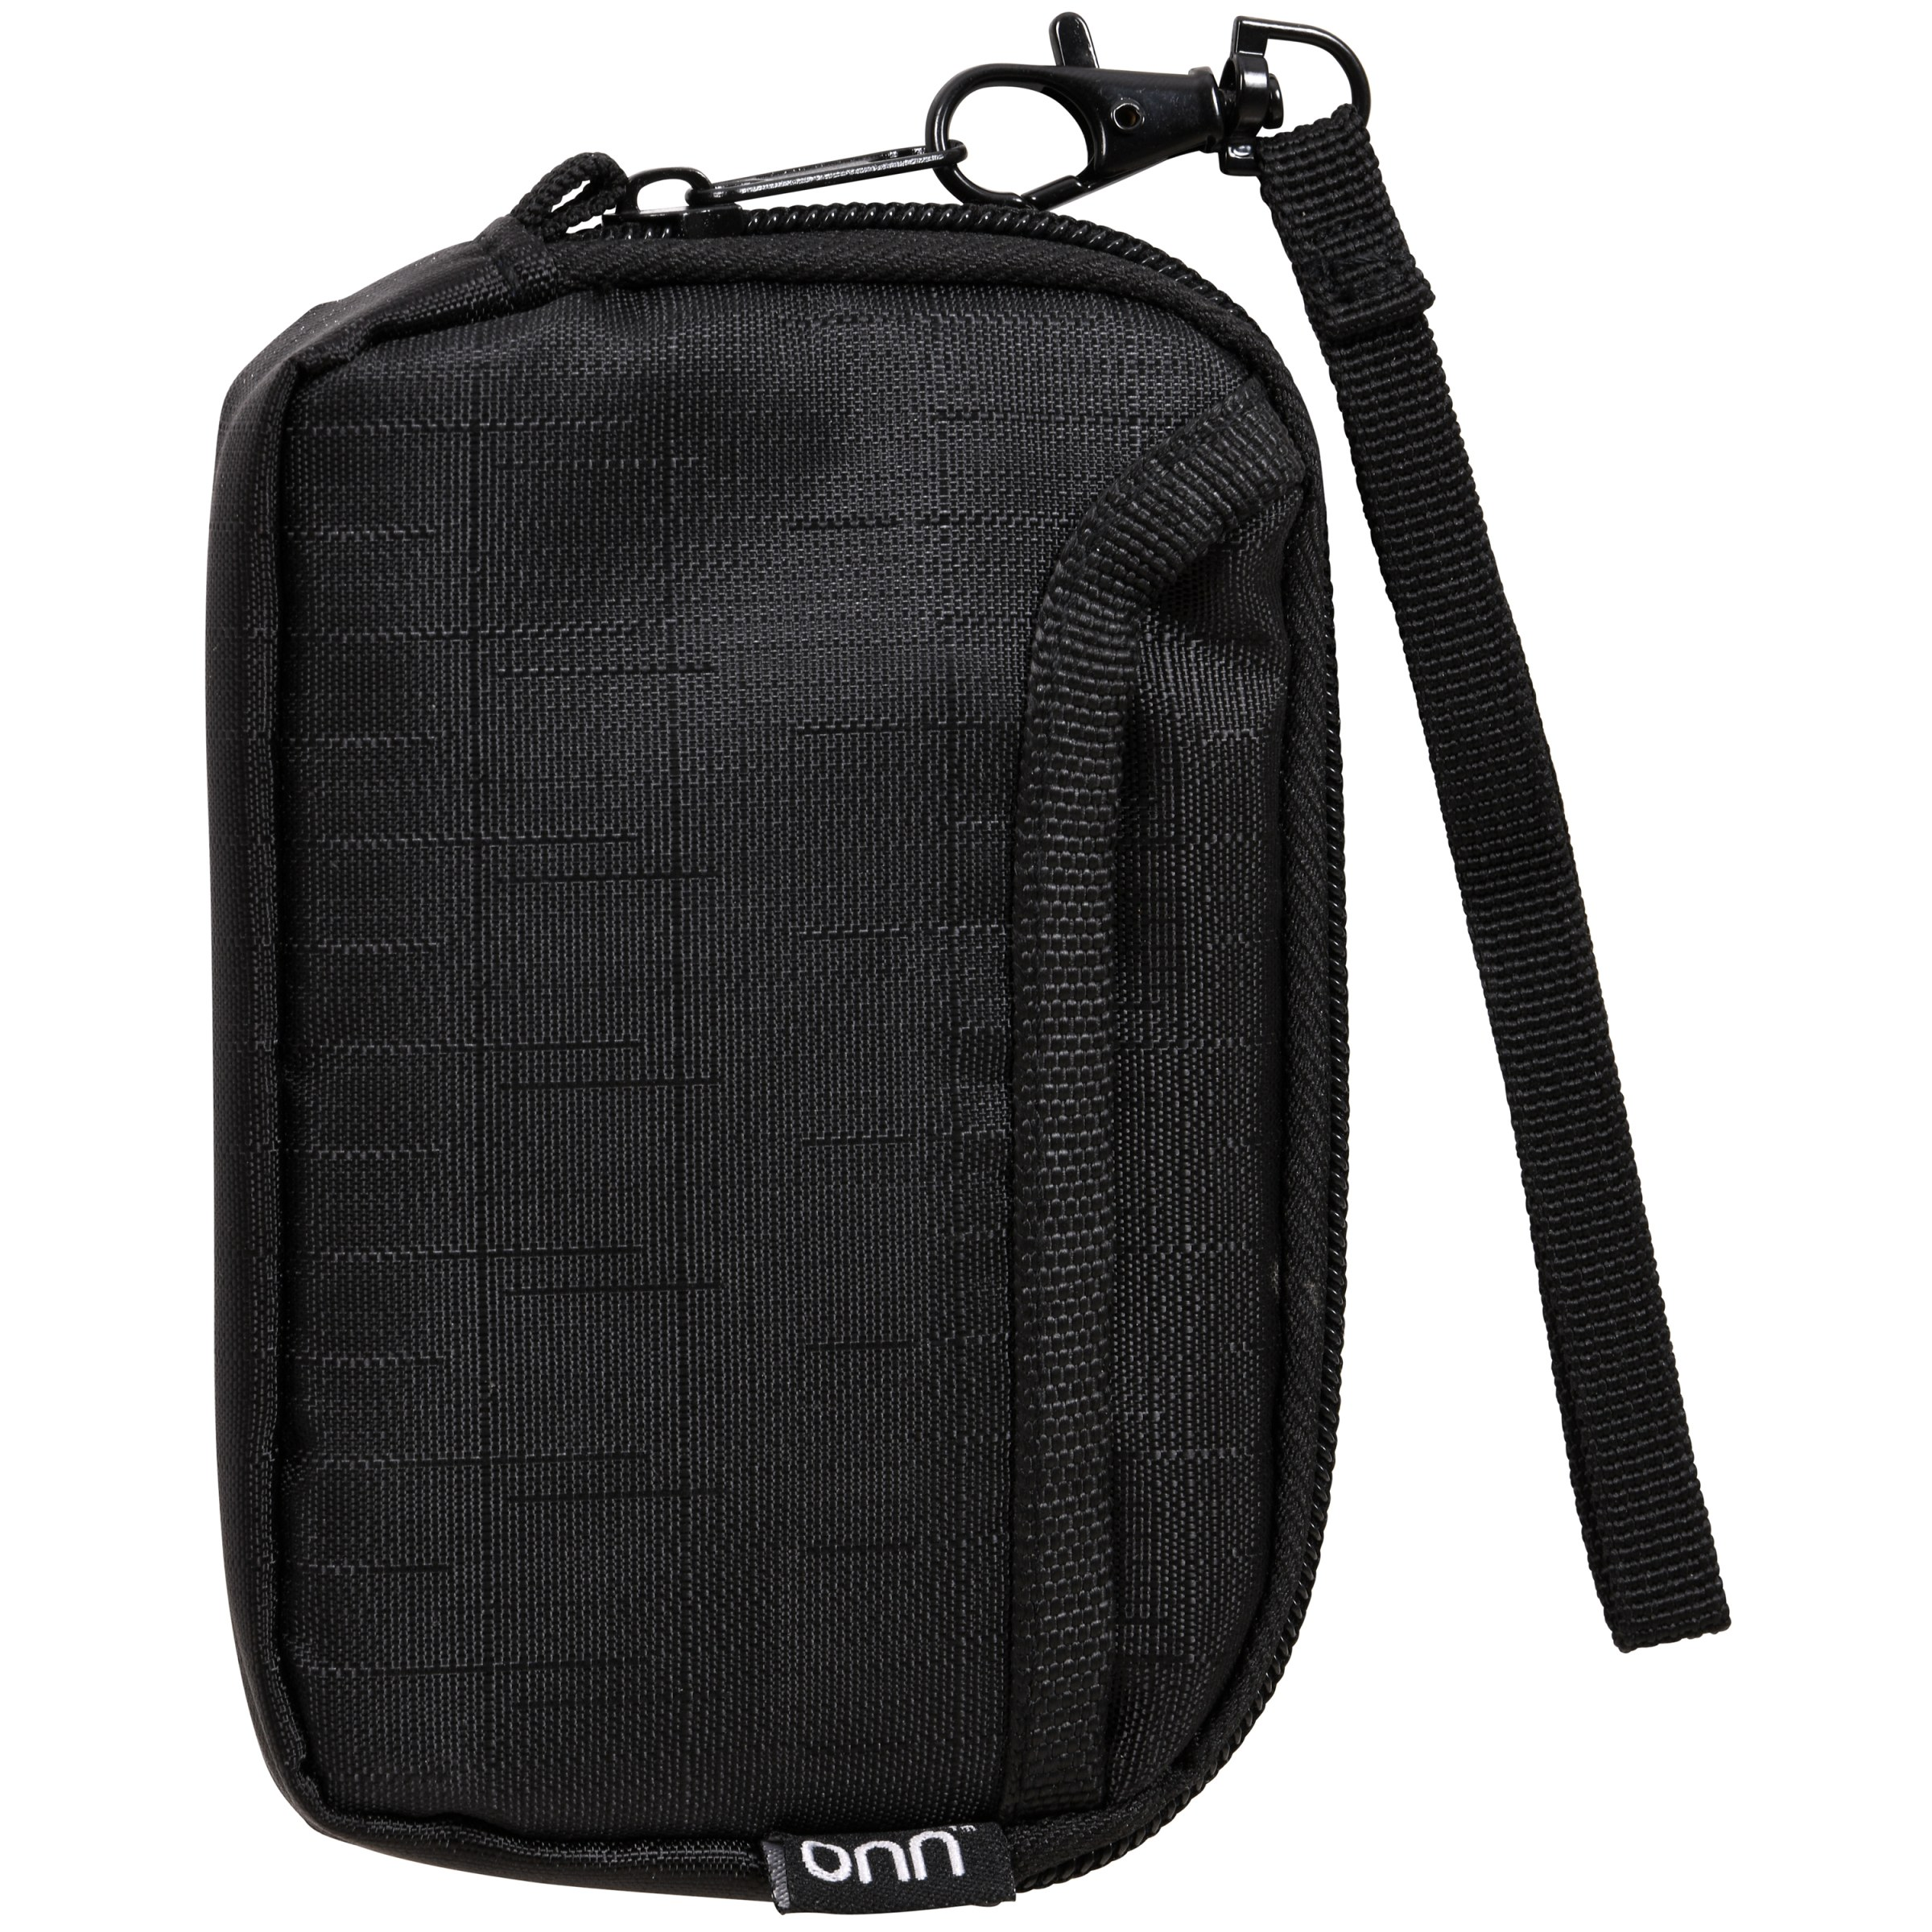 Onn Compact Camera Carrying Case, 5x3x1 Inch